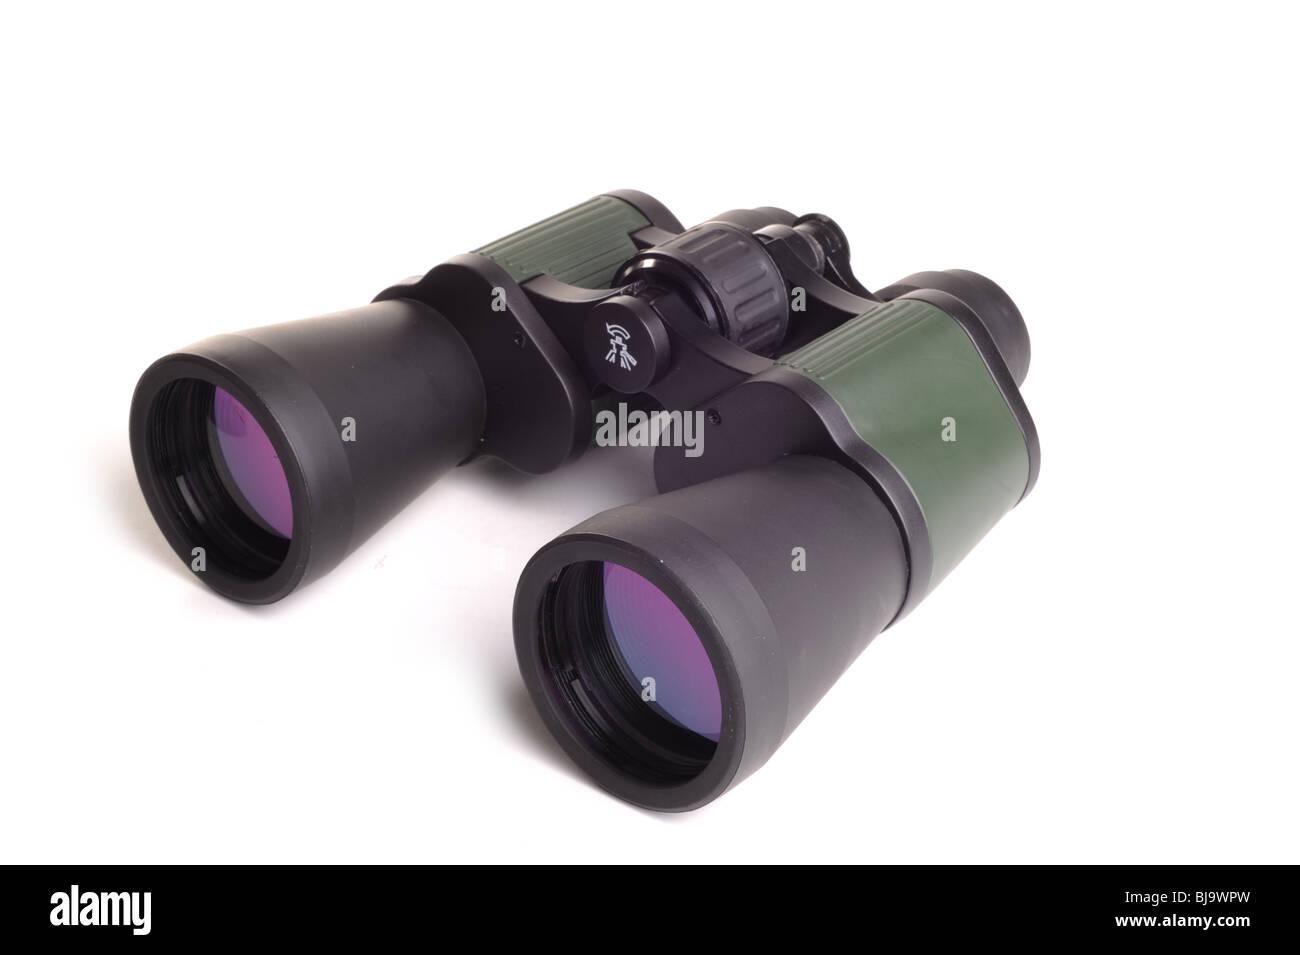 Binoculars photographed in studio against a white background - Stock Image